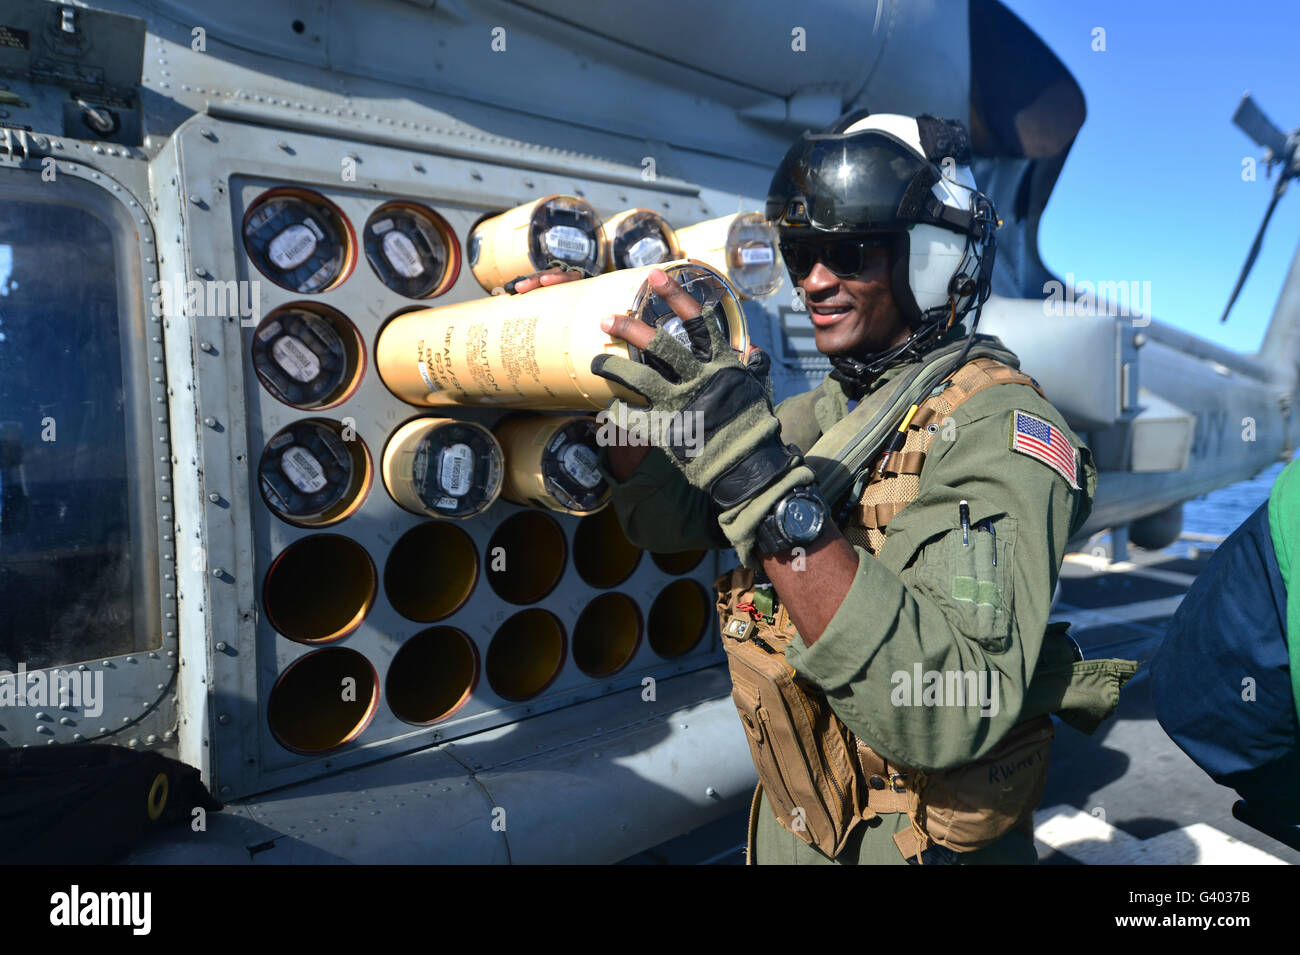 Naval Aircrewman loads a sonar buoy into an MH-60R Sea Hawk helicopter. - Stock Image